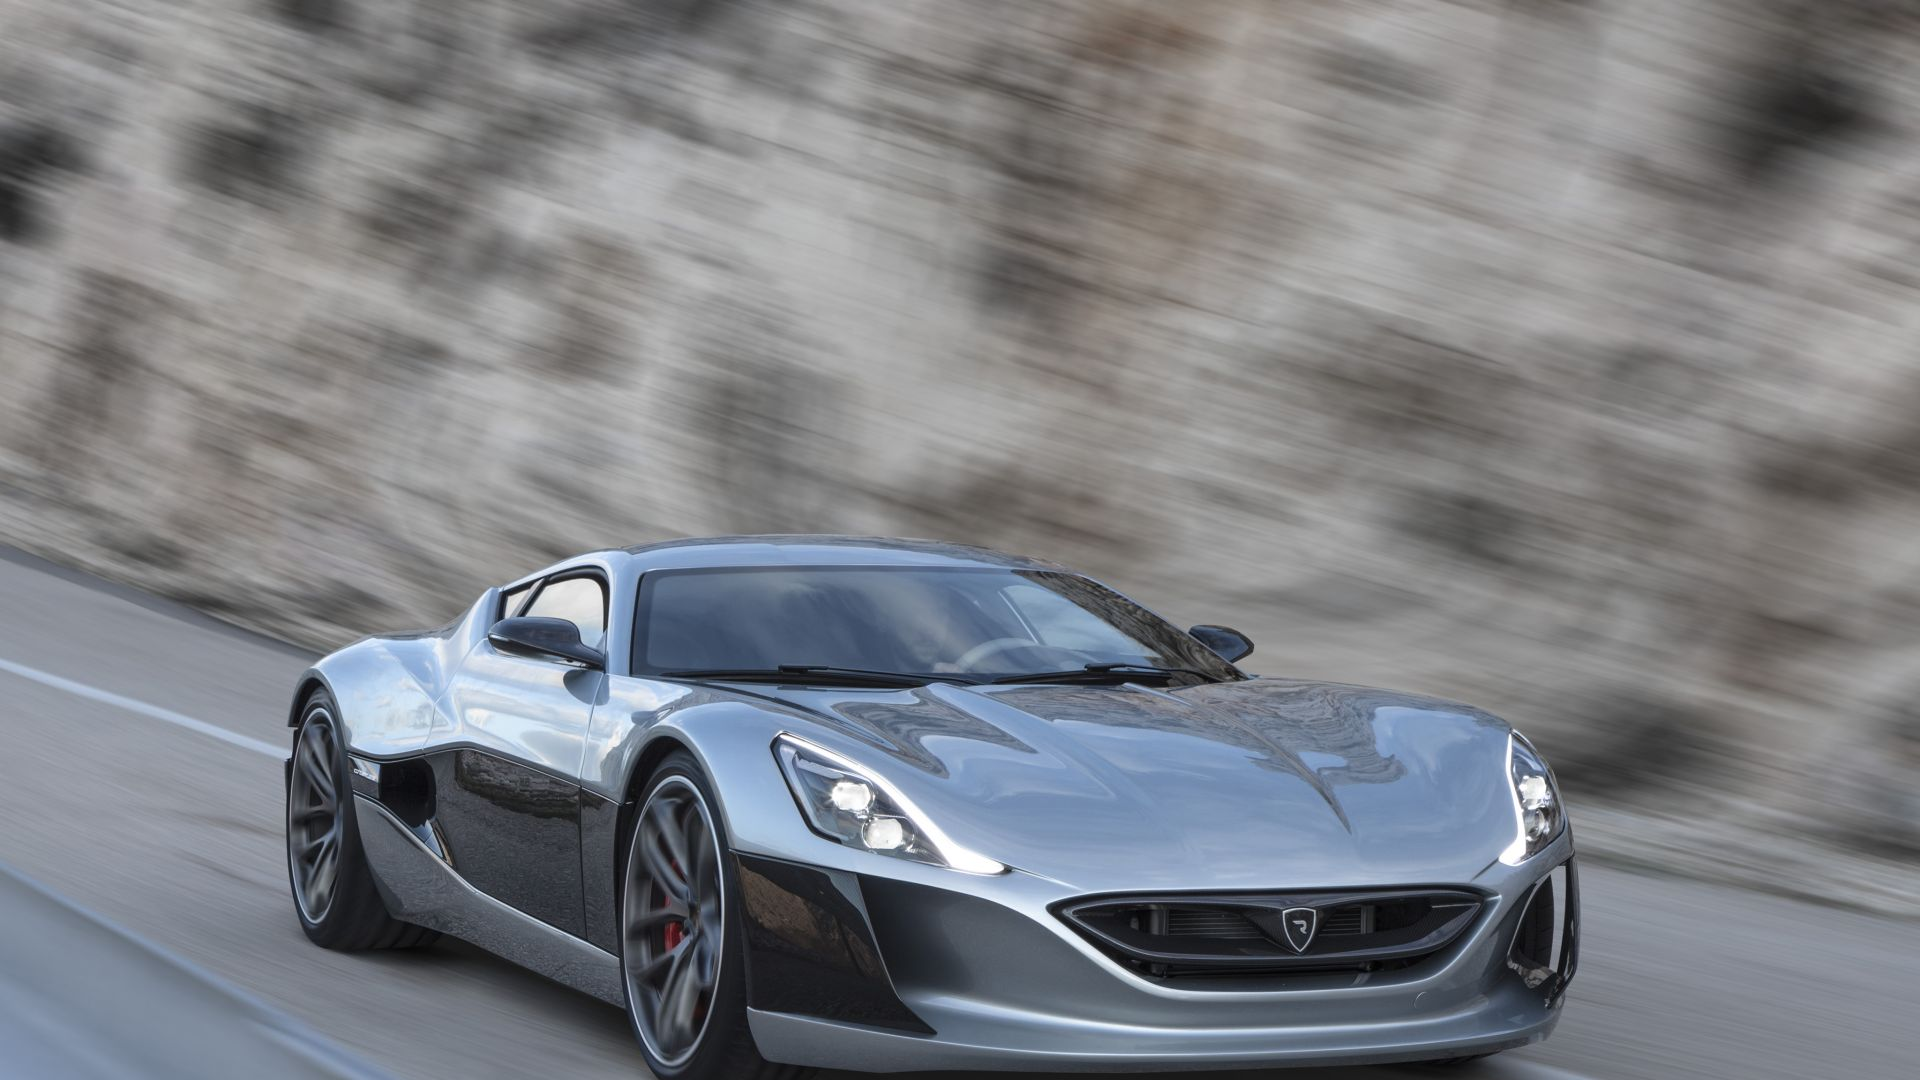 Rimac Concept One, Geneva Auto Show 2016, ultra-light super car, sport car, silver (horizontal)